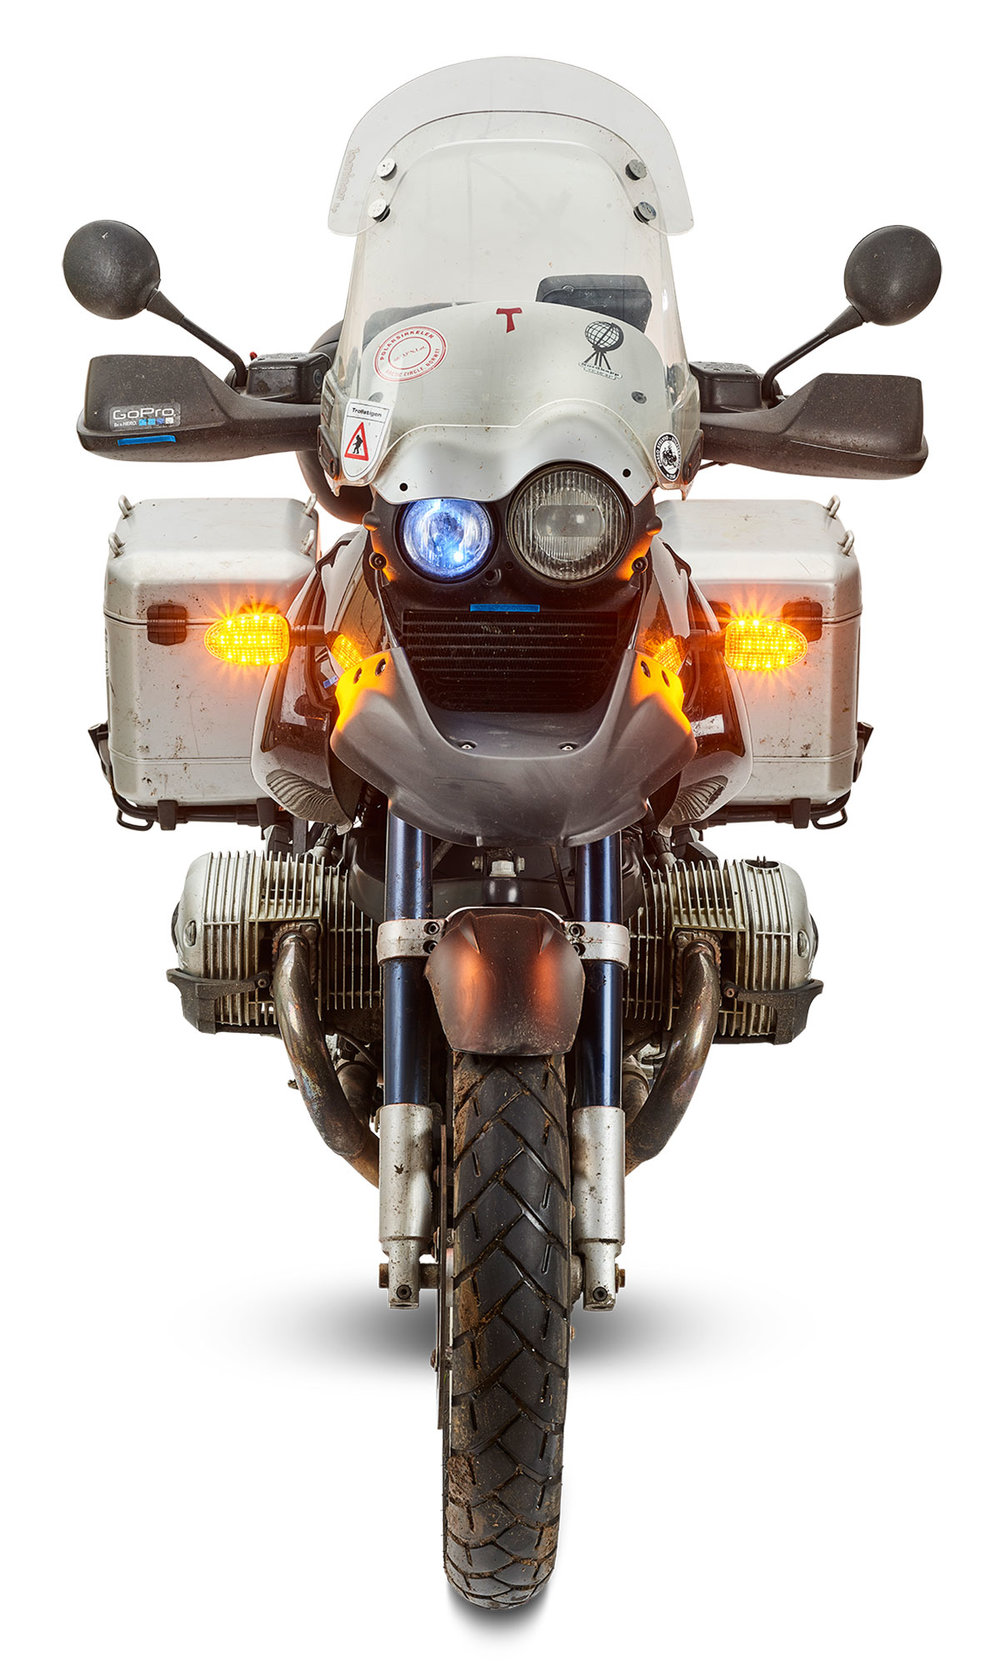 Ultrabrights Legacy II Extreme for even earlier BMW 'R, F and K' series - Even earlier BMW bikes from 1993 to 2004